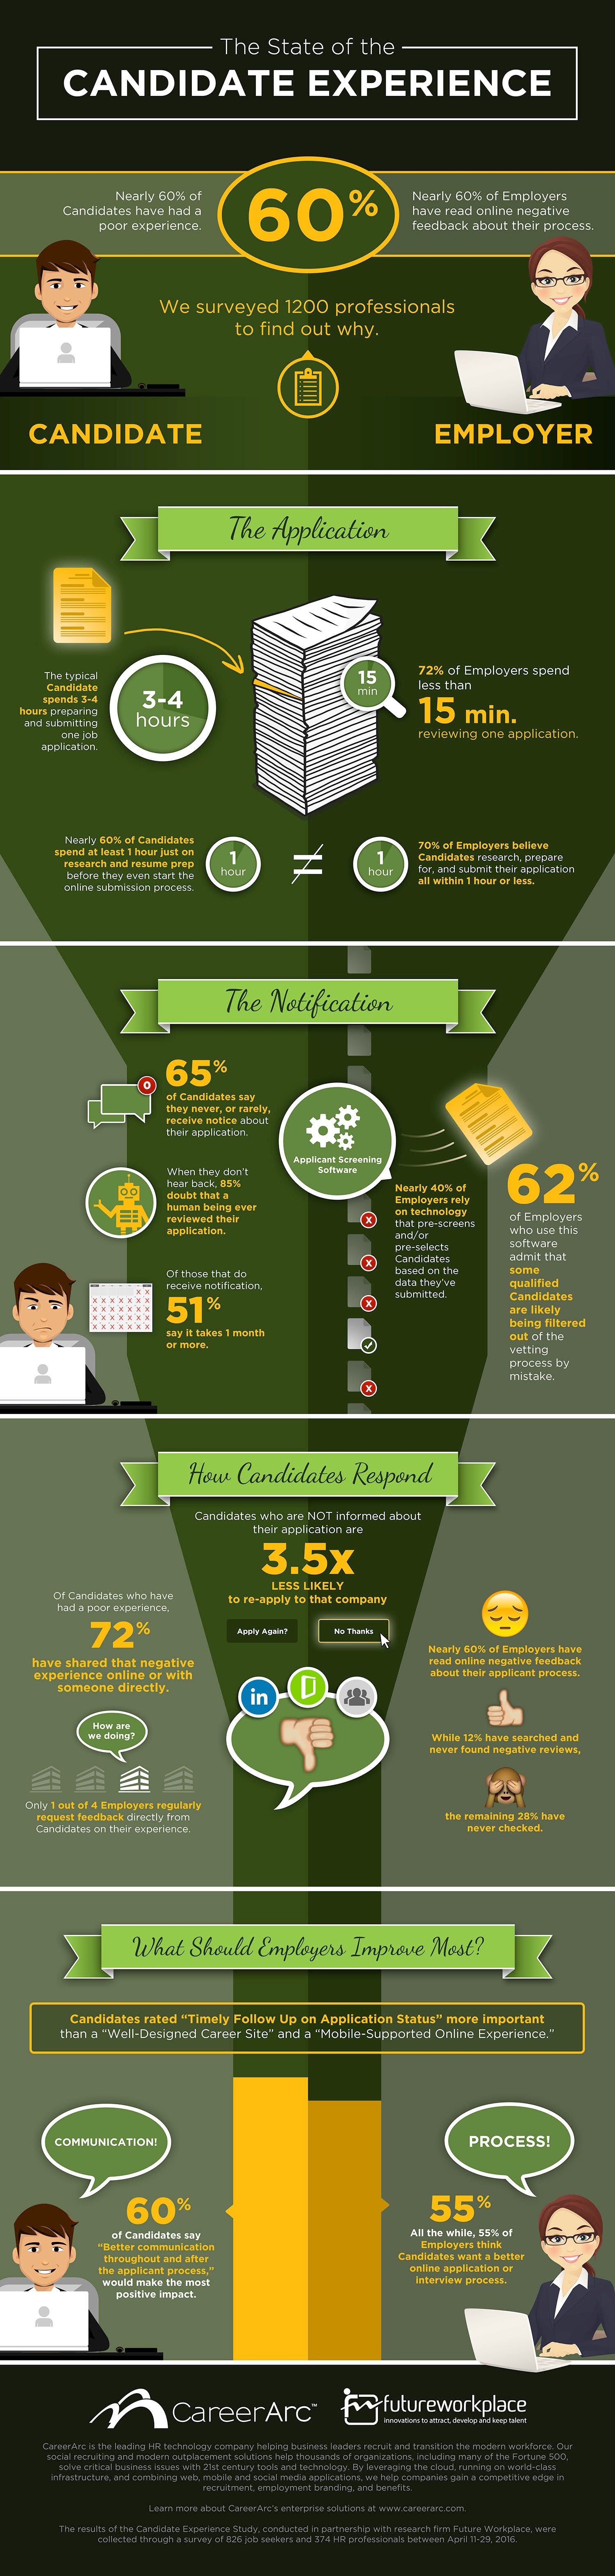 Candidate Experience (Infographic)